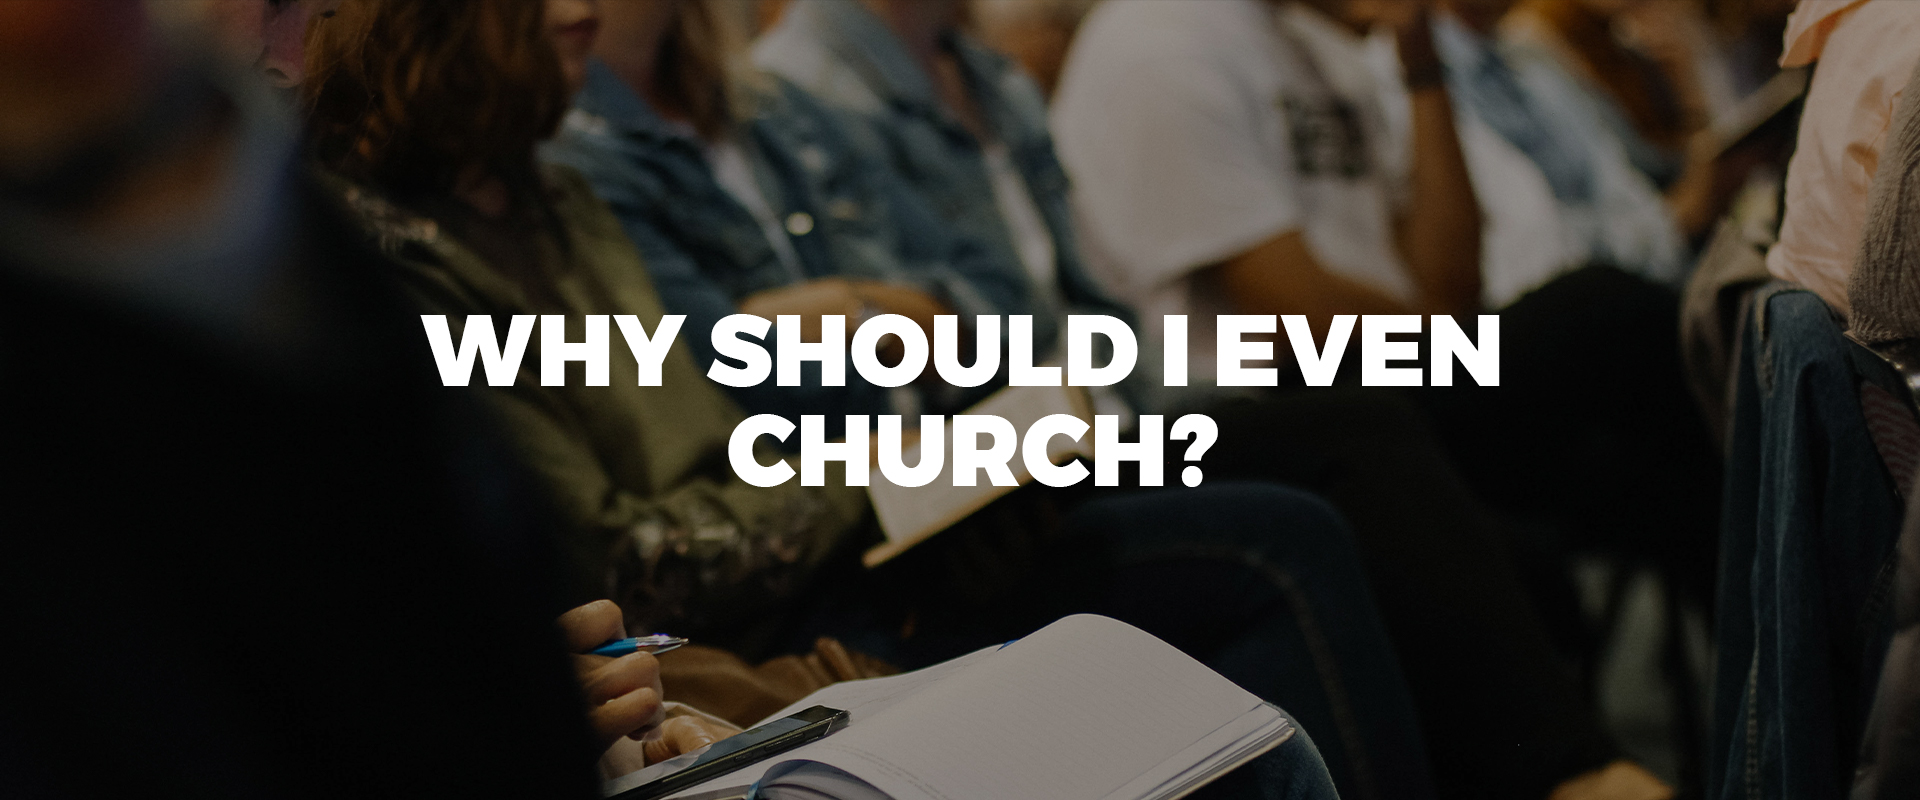 Why Should I Even Church?